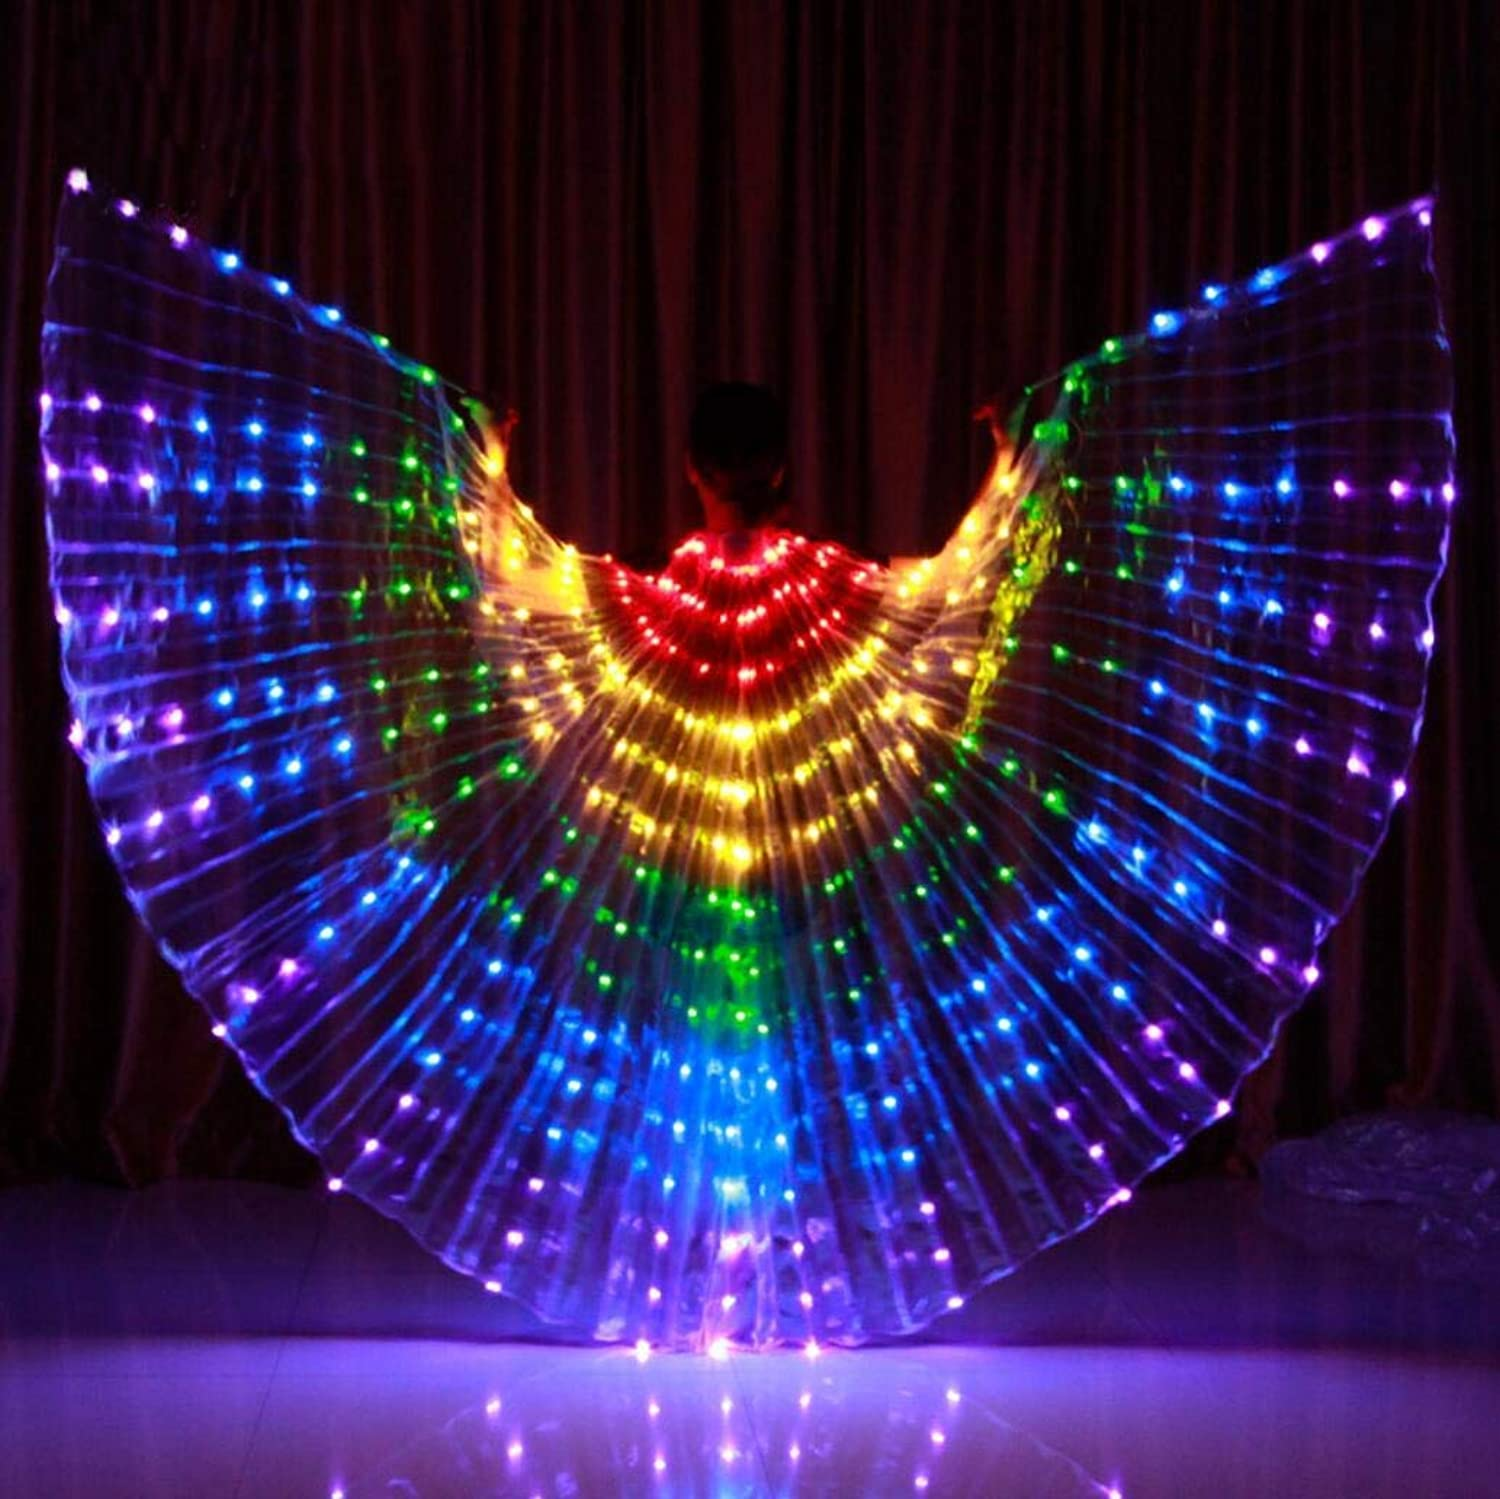 Dance Fairy Opening Belly Dance LED Isis Wings with Sticks RodsWings 300 LED Luminous Light Up Stage Performance Props Passed CE